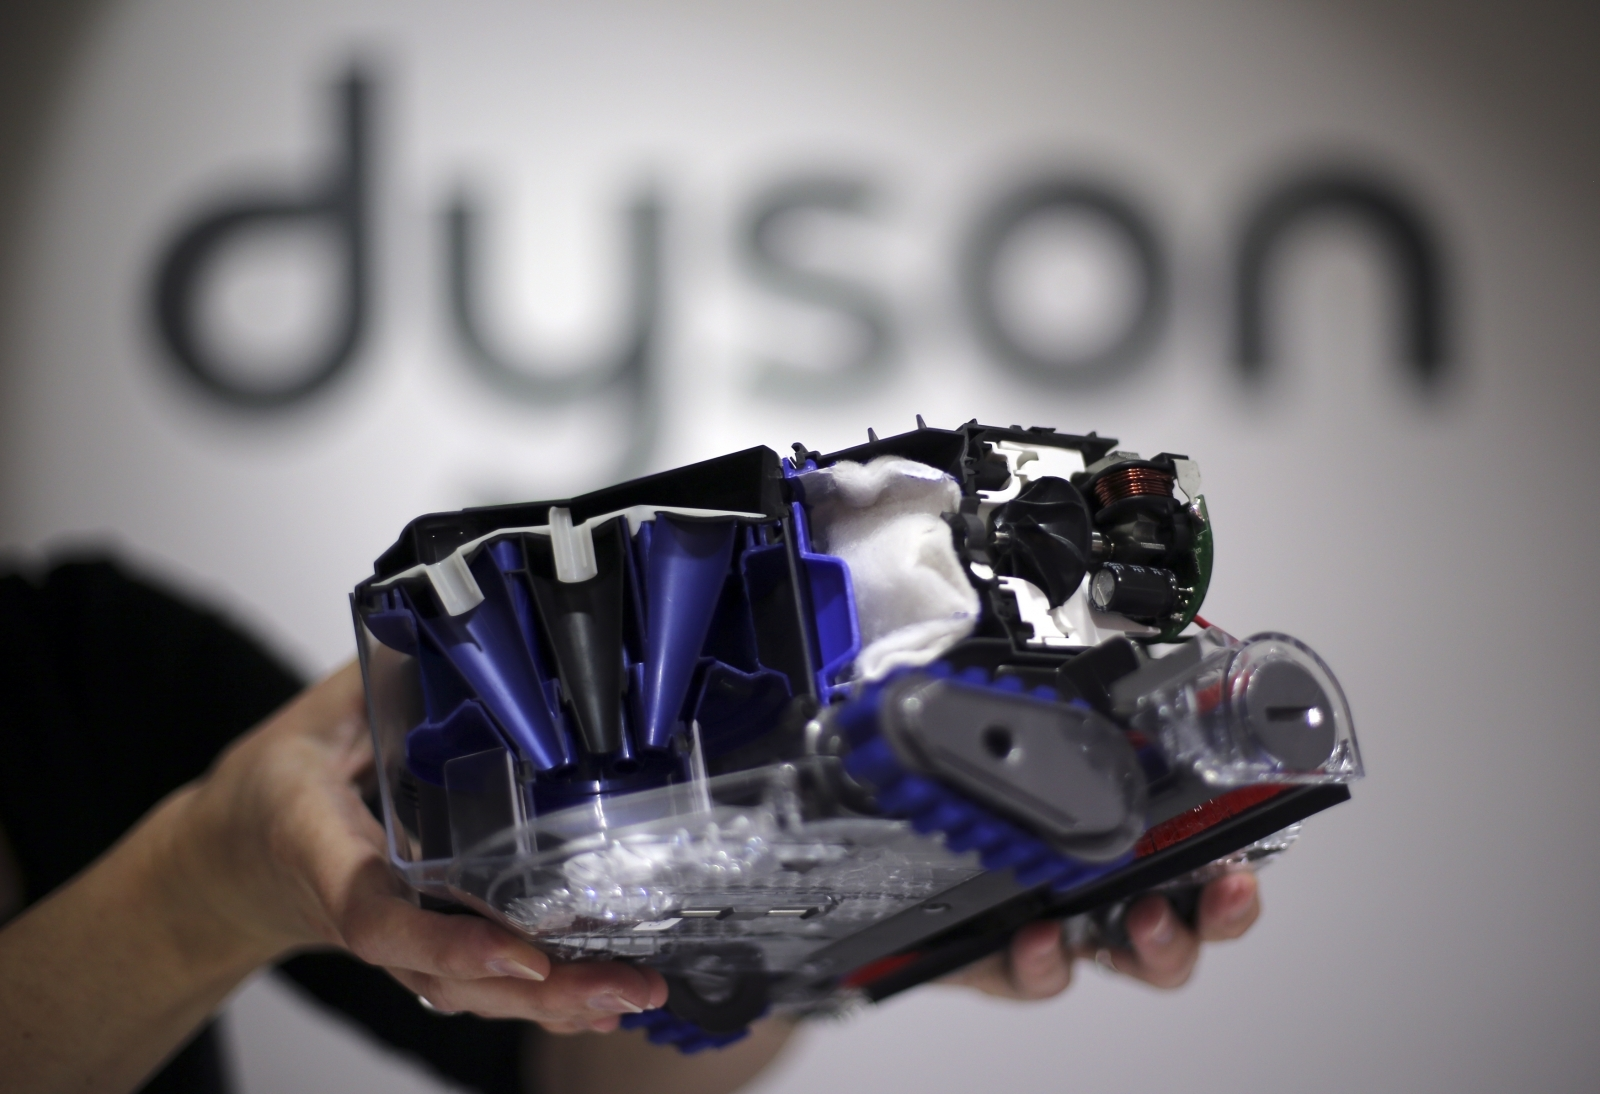 Vacuum Giant Dyson Is Building An Electric Car